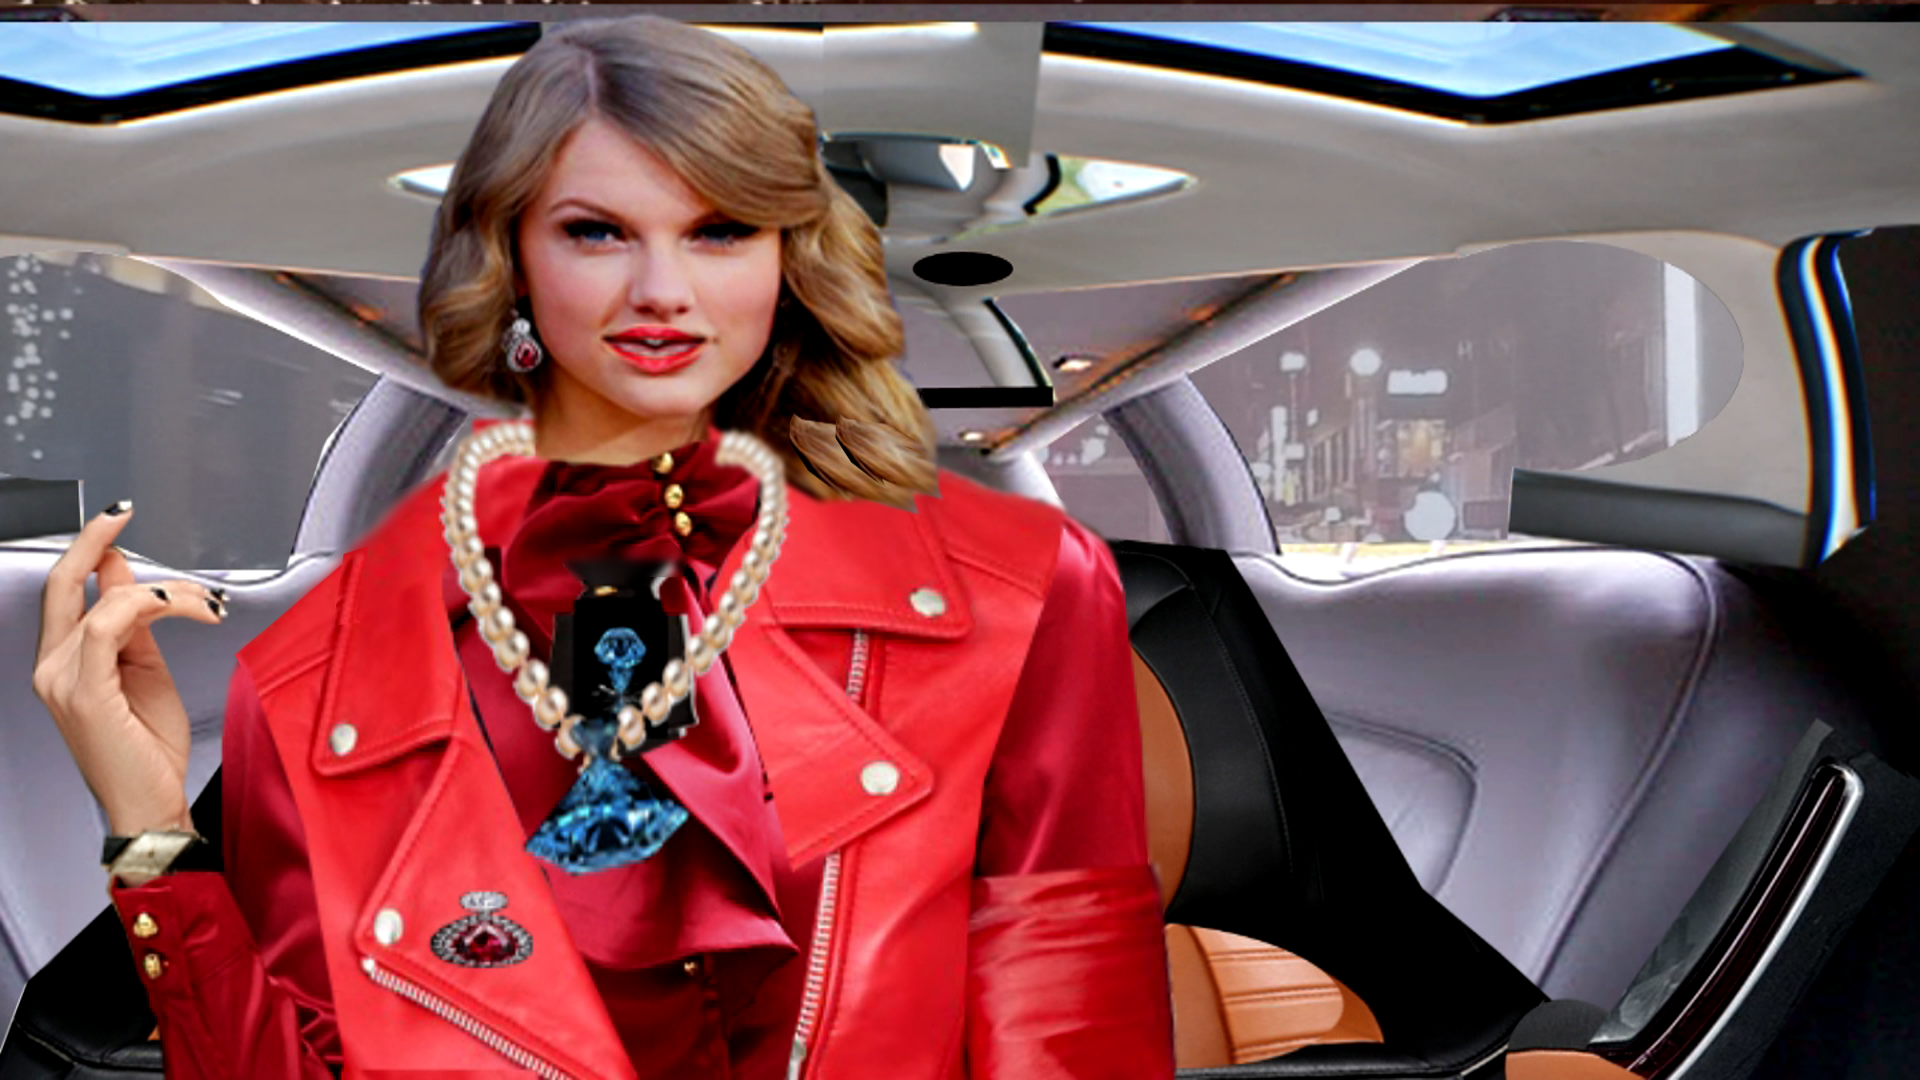 taylor swift rjtspic 1_Layer 3 copy 7